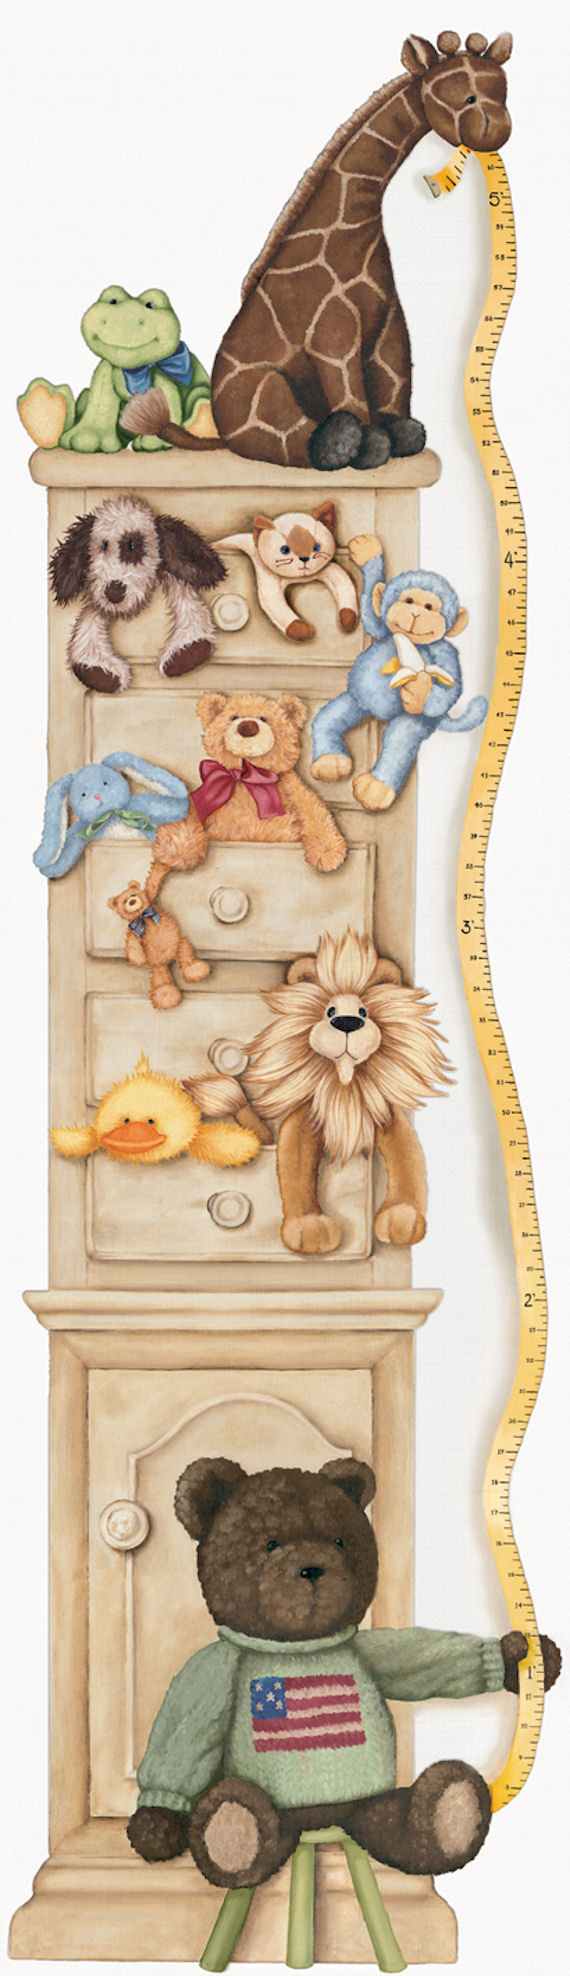 Growing  with Toy Friends Art Accents Growth Chart - Wall Sticker Outlet